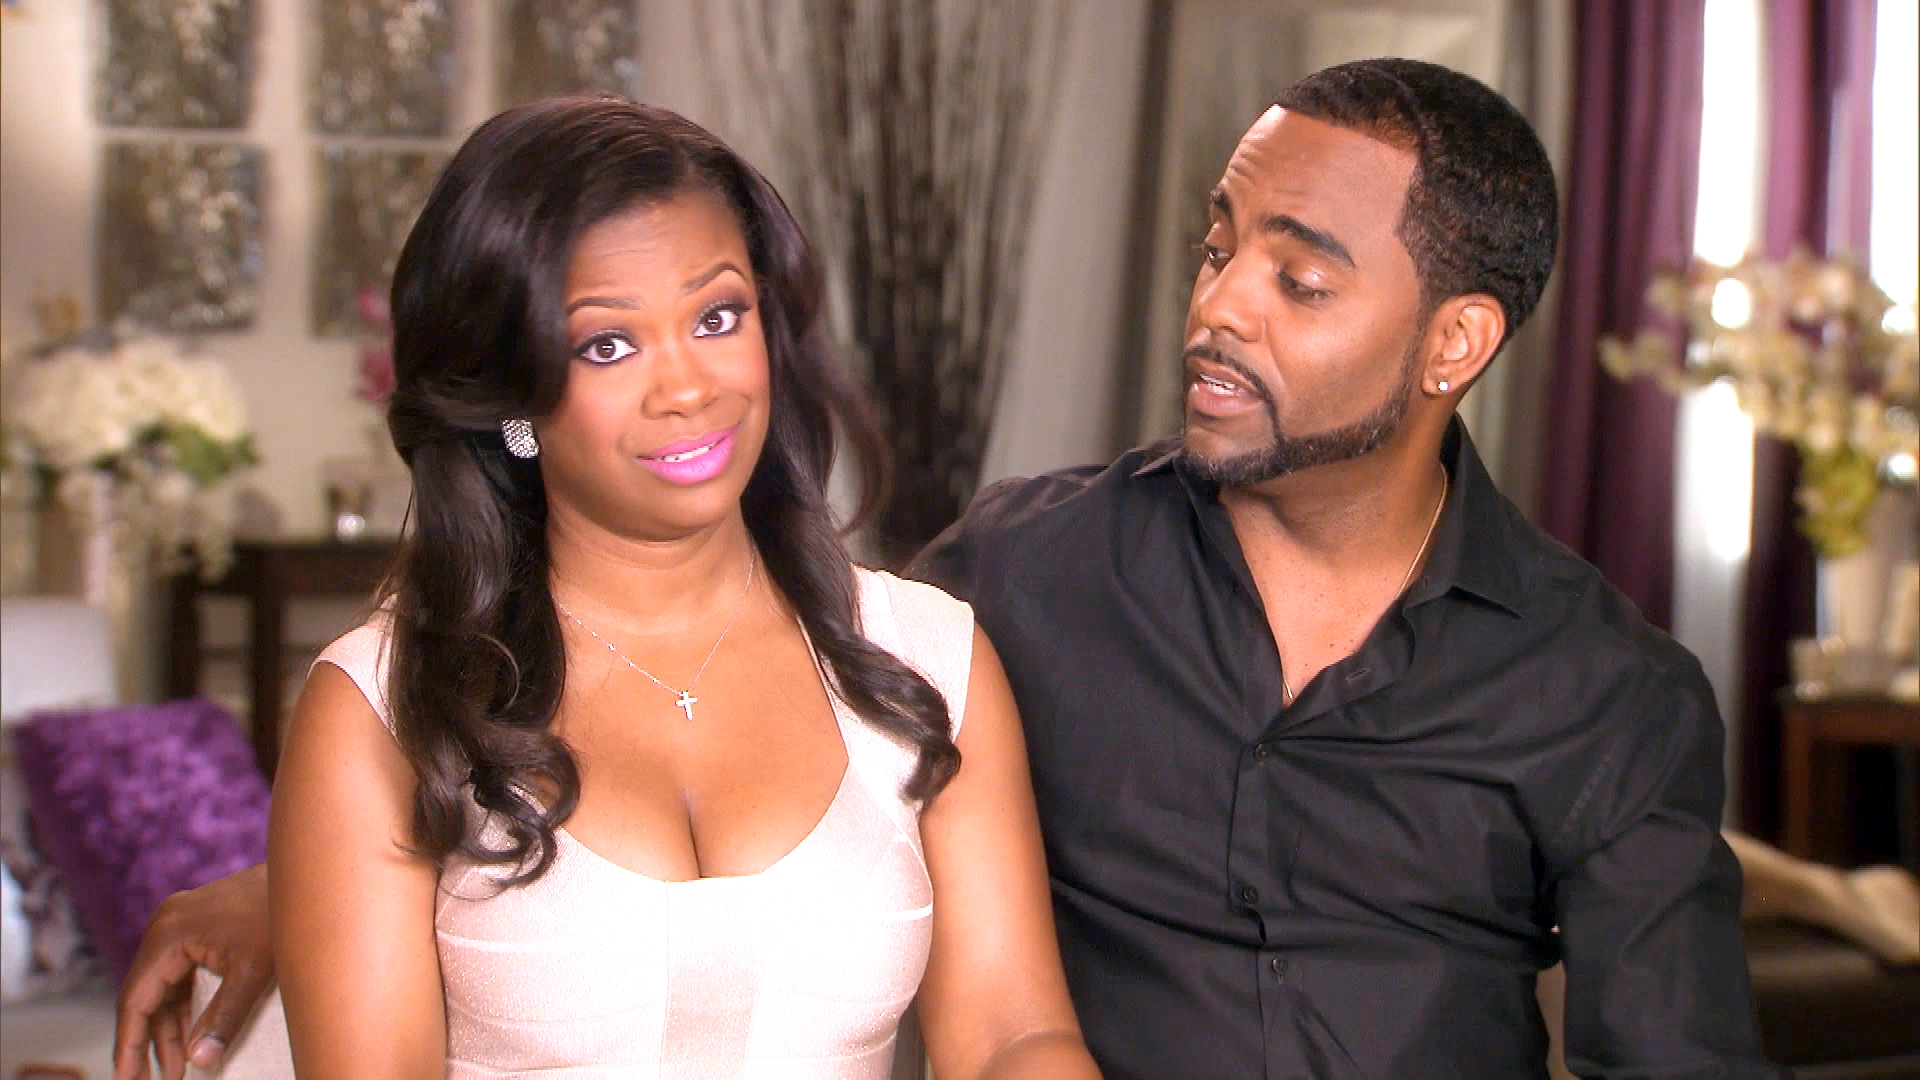 """kandi-burruss-is-proud-to-receive-the-woman-of-creative-excellence-award-she-looks-gorgeous-in-red-with-todd-tucker-by-her-side"""